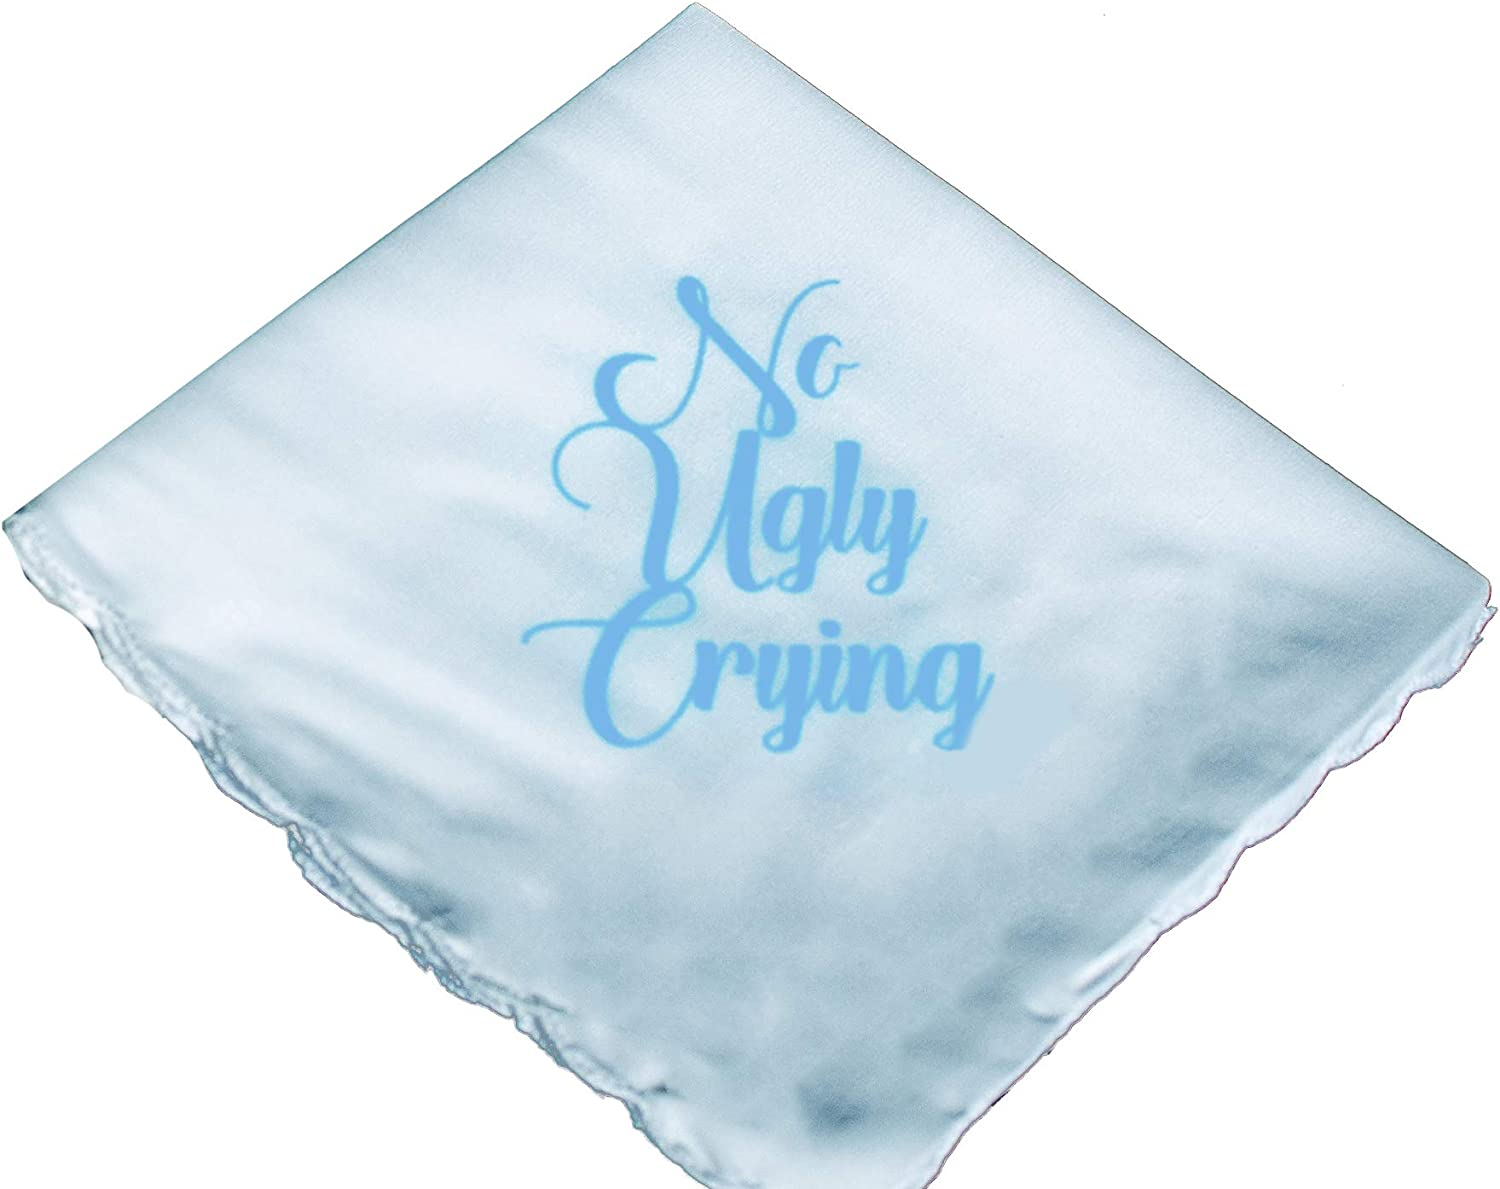 No Ugly Crying Wedding Handkerchief With Included Gift Box by Wedding Tokens- Perfect Bridesmaid Gift